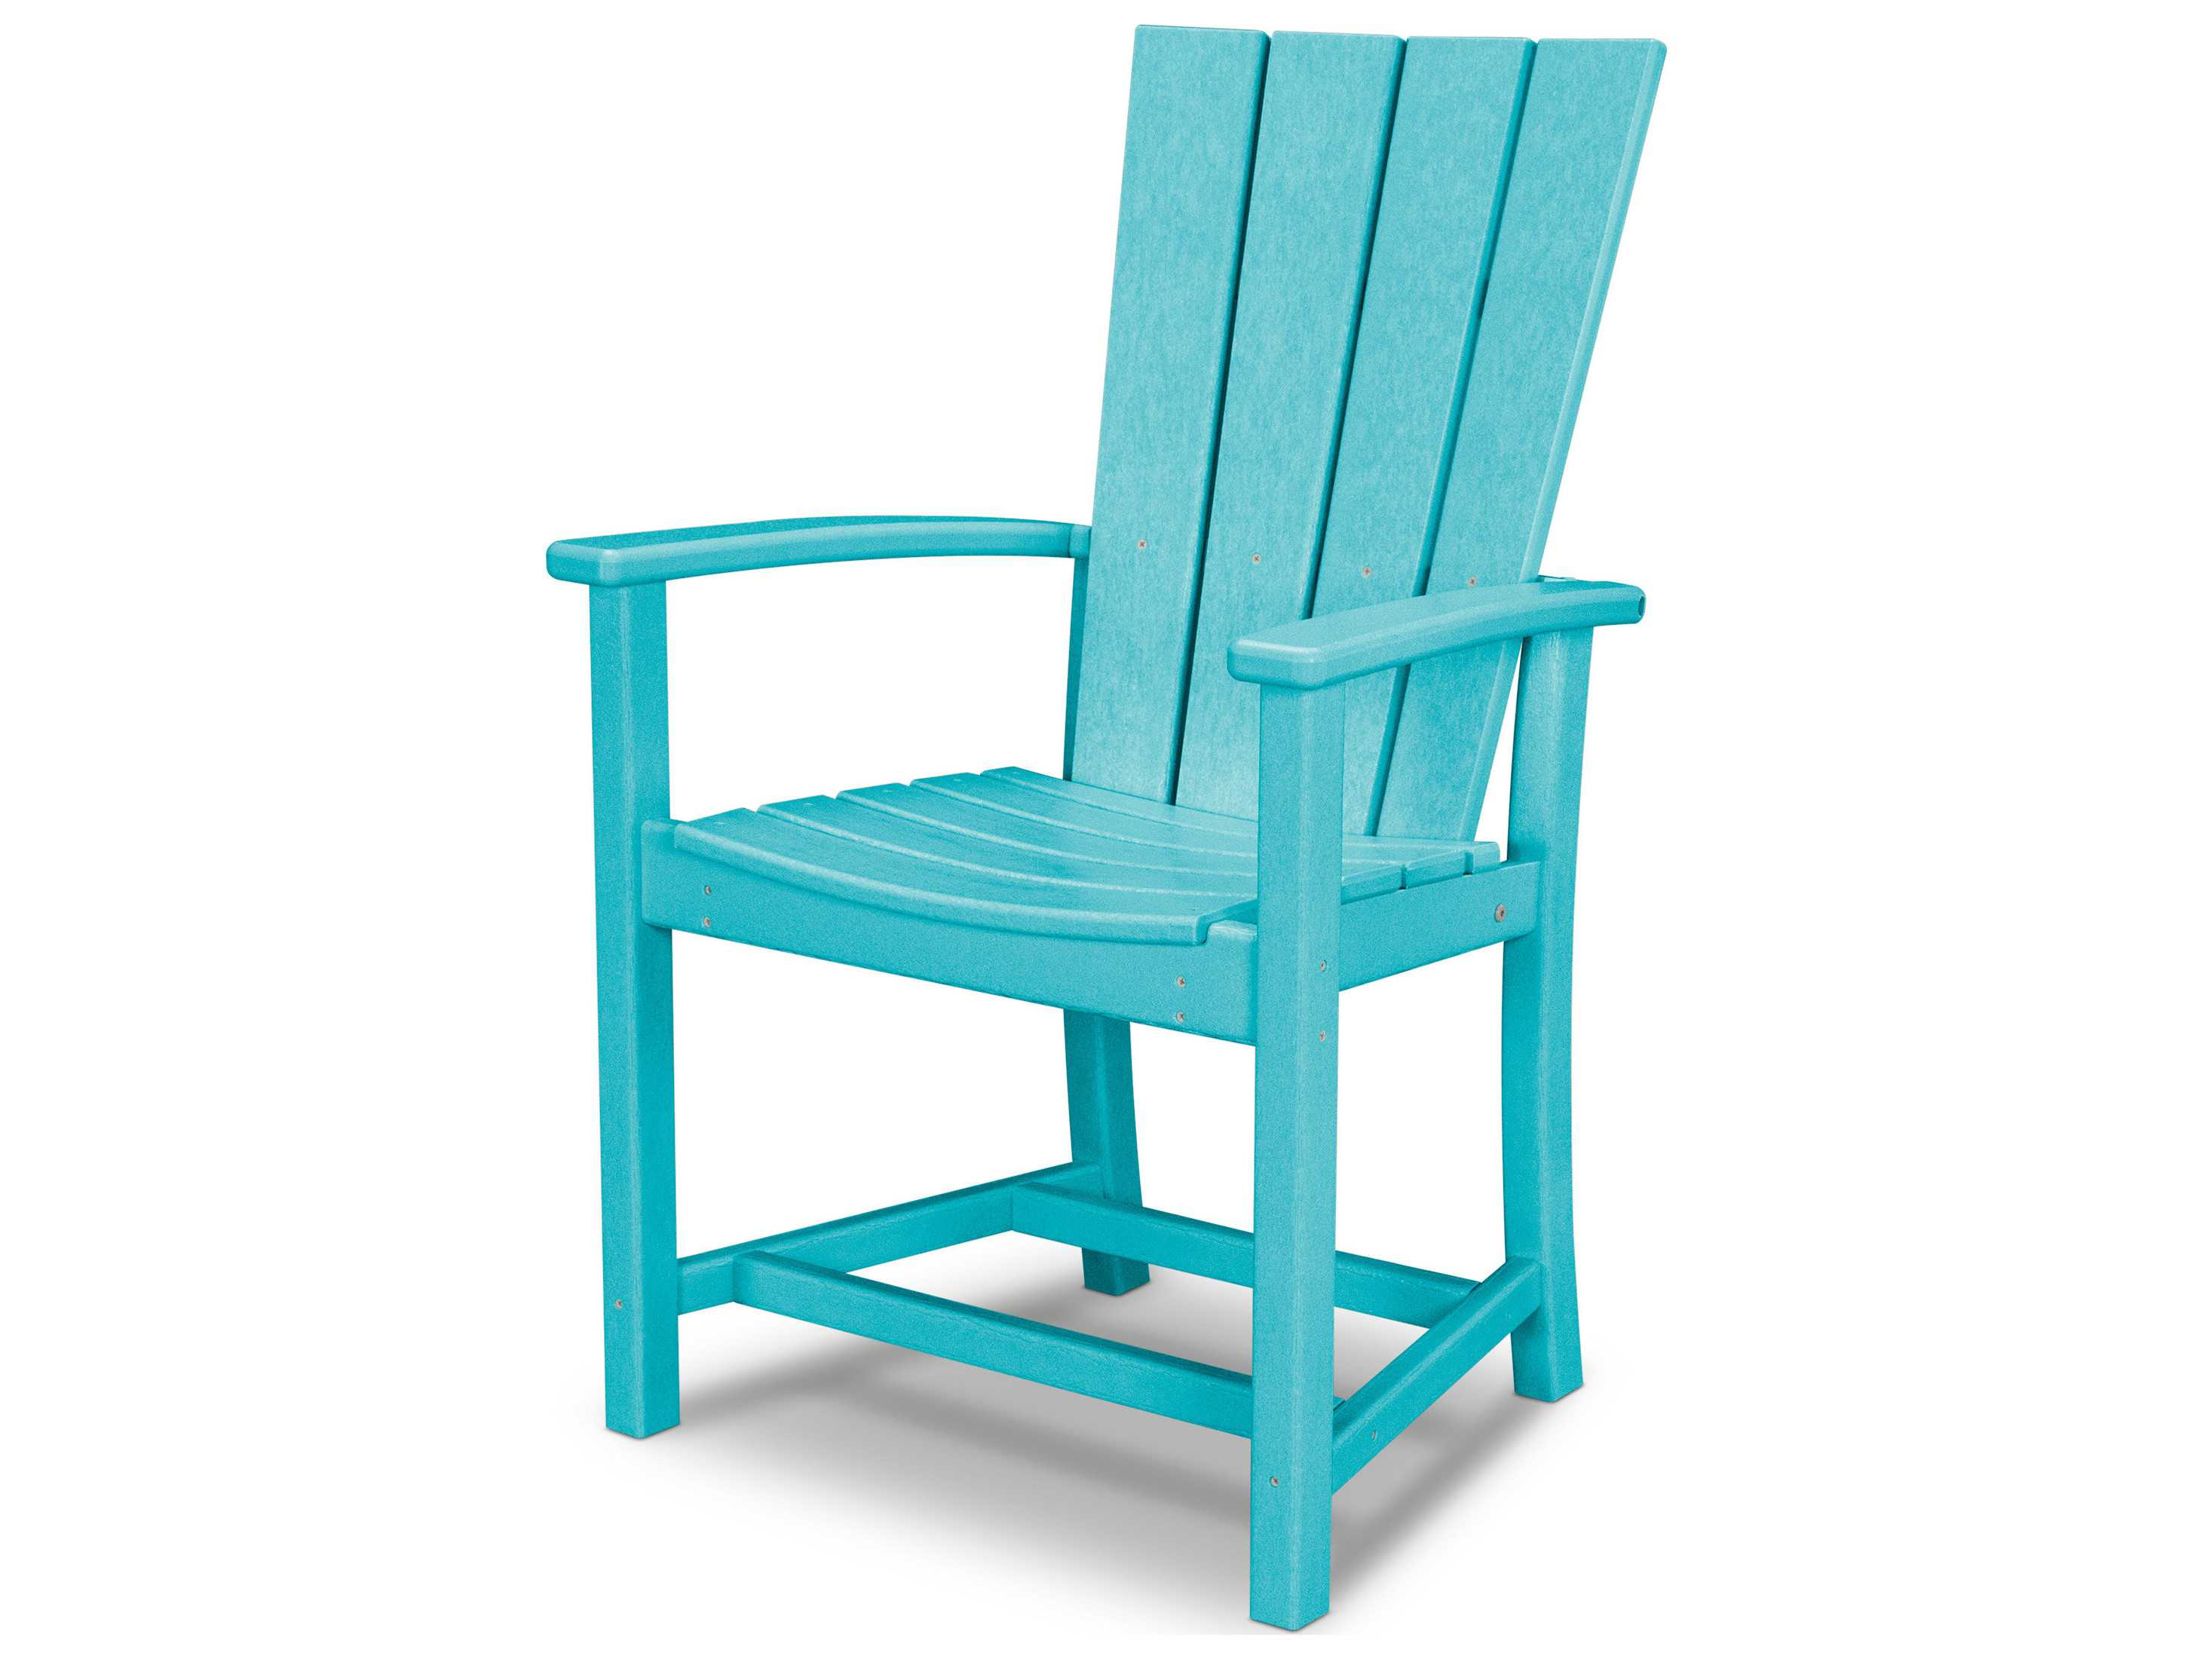 Plastic Outdoor Chair Polywood Quattro Recycled Plastic Adirondack Dining Chair